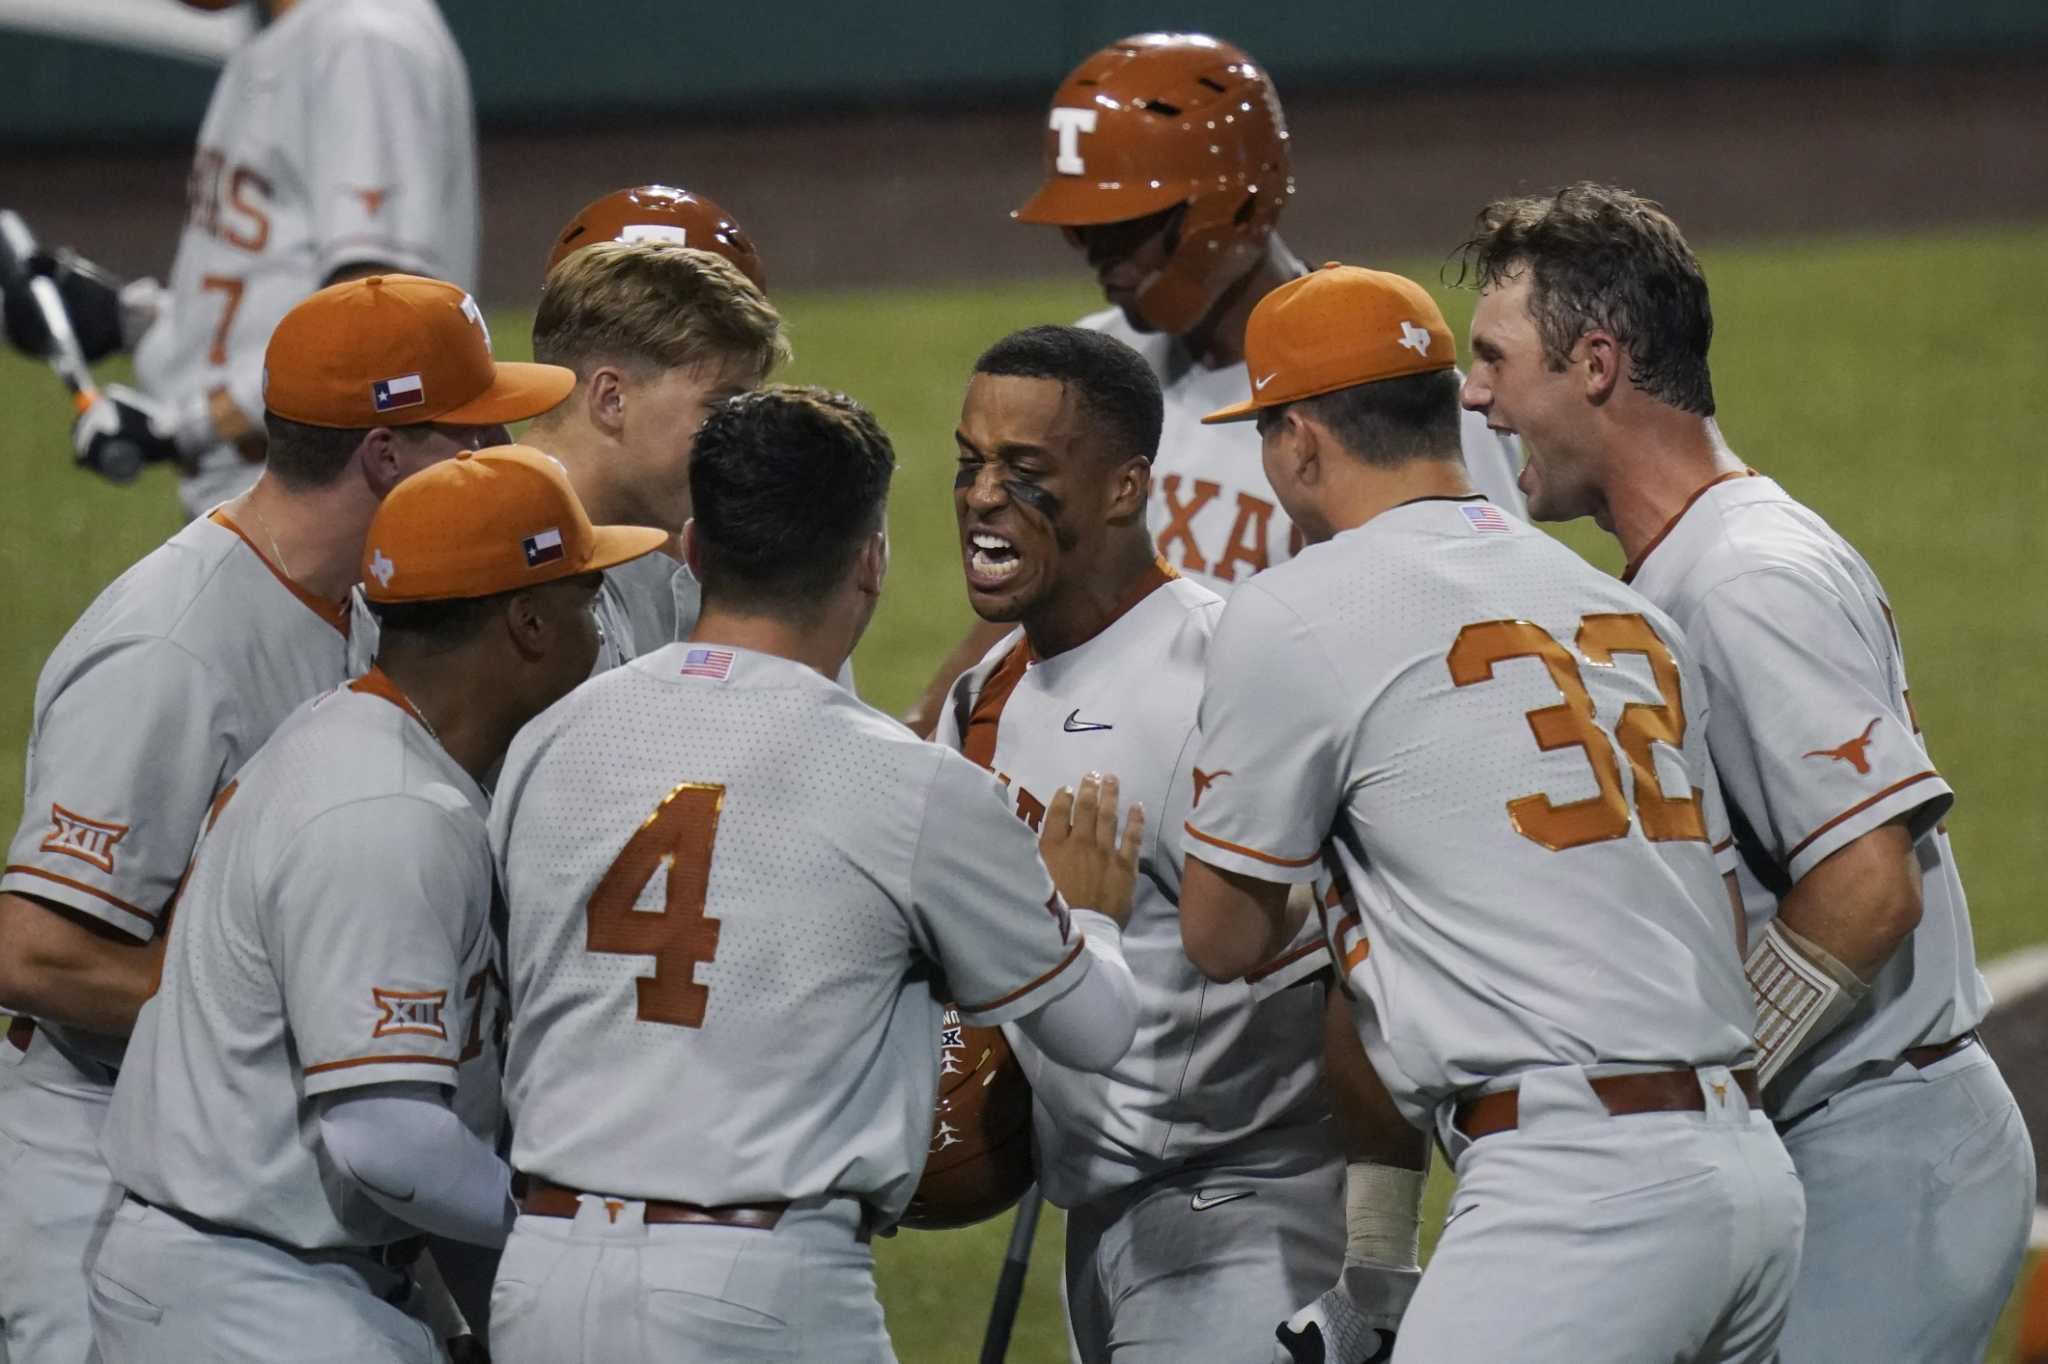 No. 2 Texas will open CWS against familiar opponent